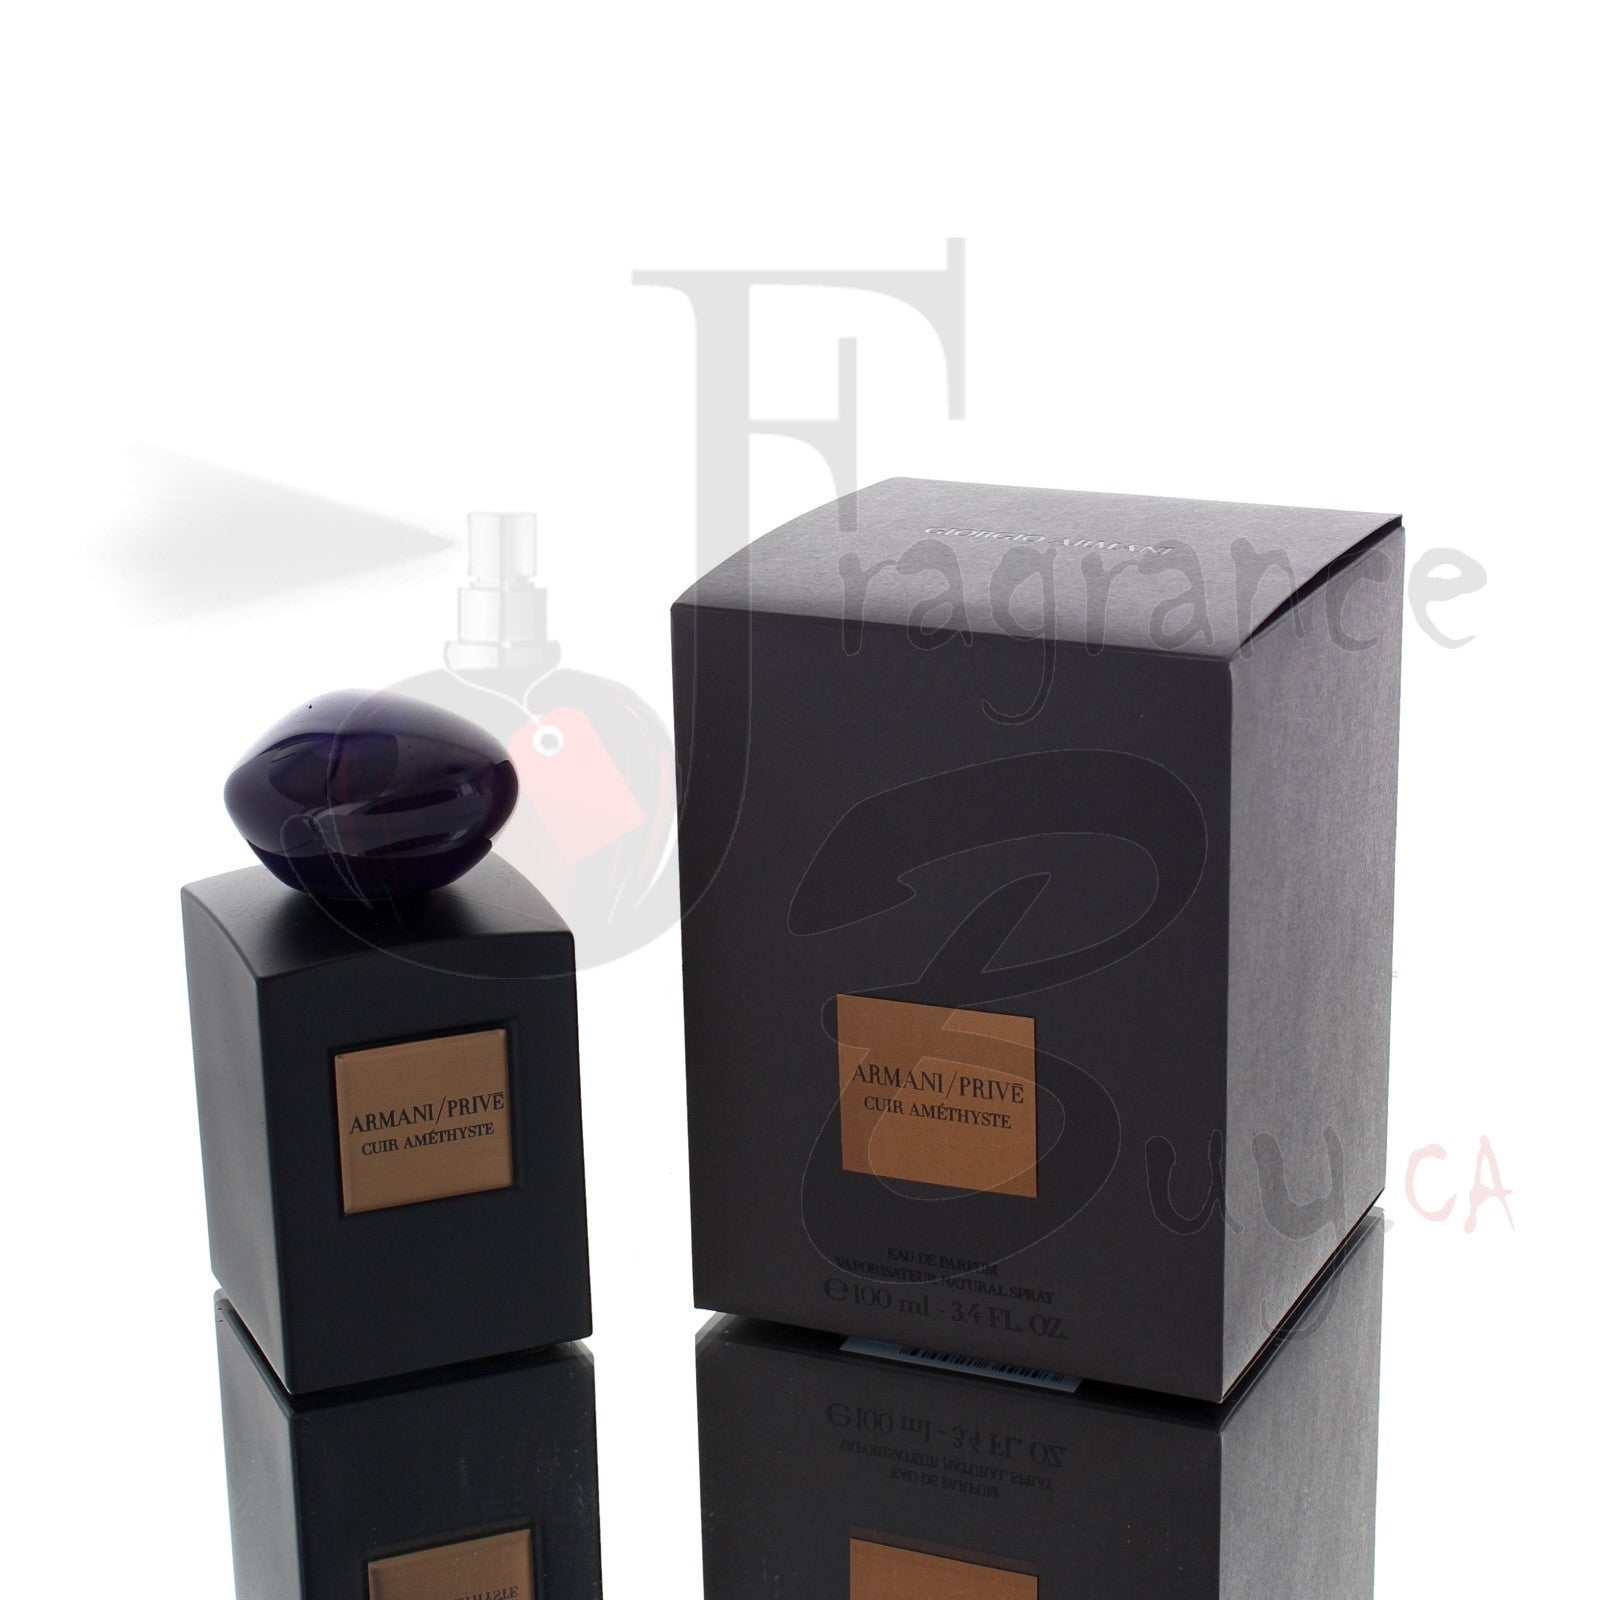 Giorgio Armani Prive Cuir Amethyste For Man